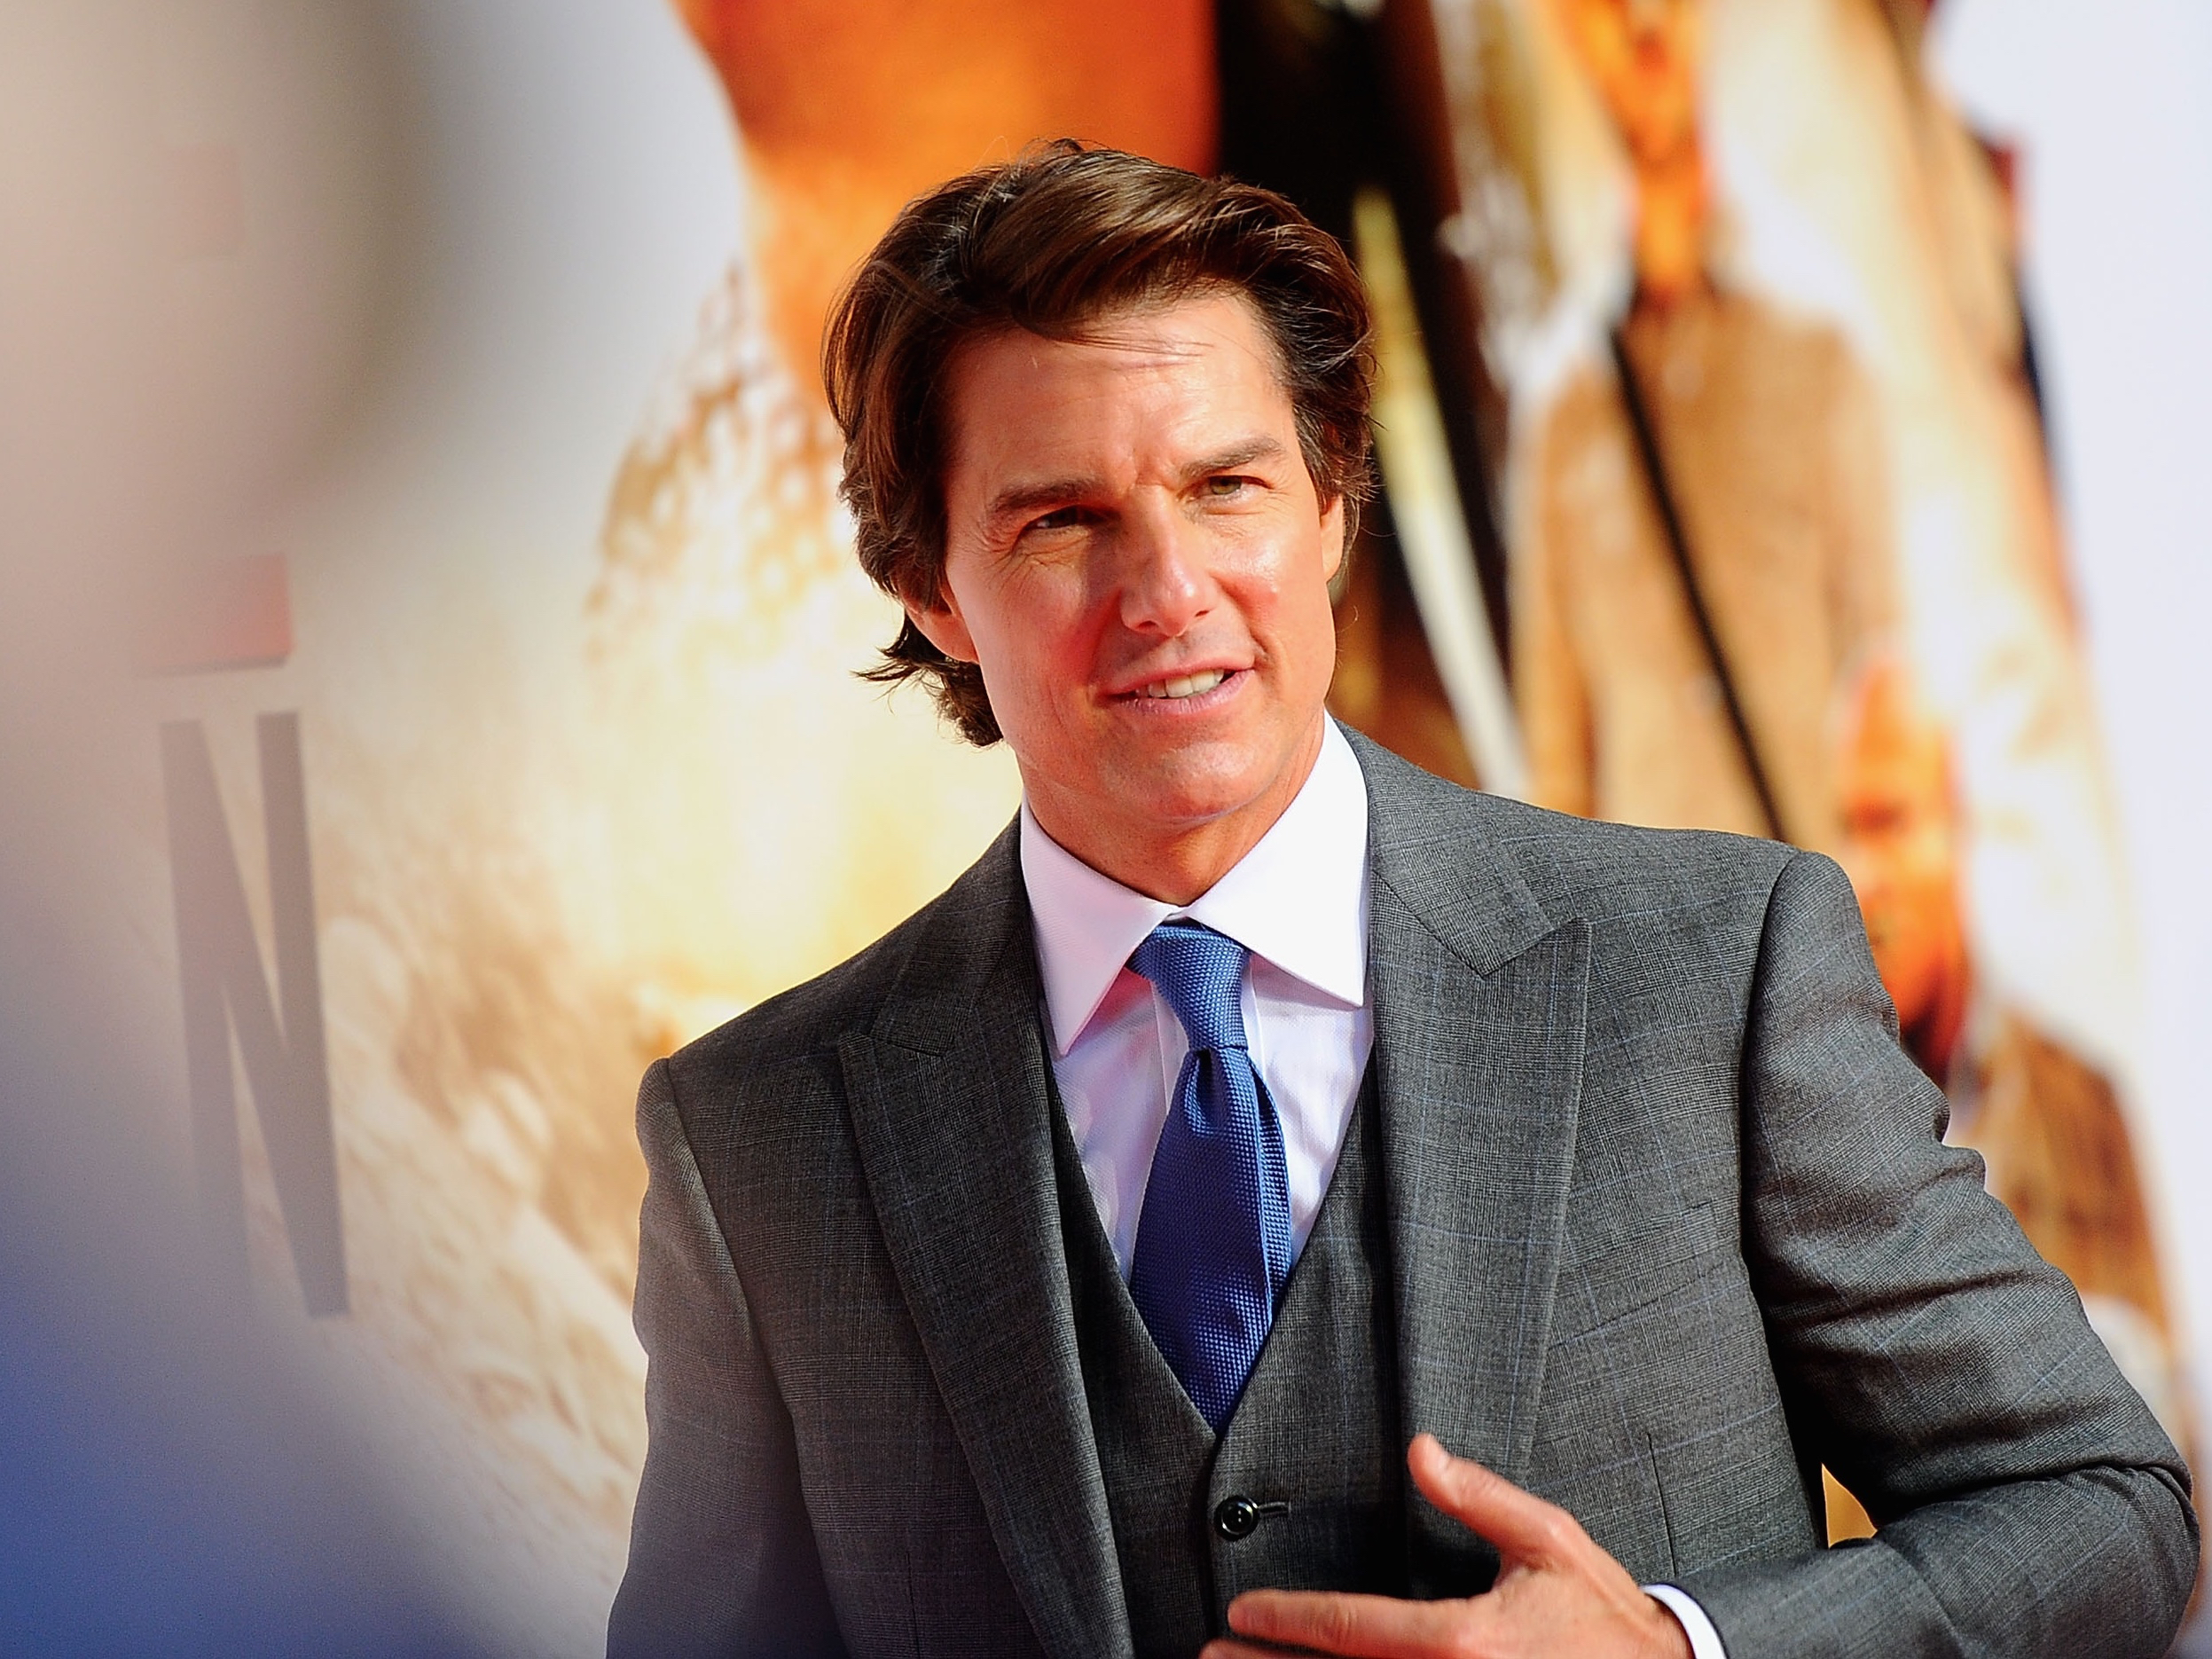 The Four Types Of Tom Cruise Movies | FiveThirtyEight